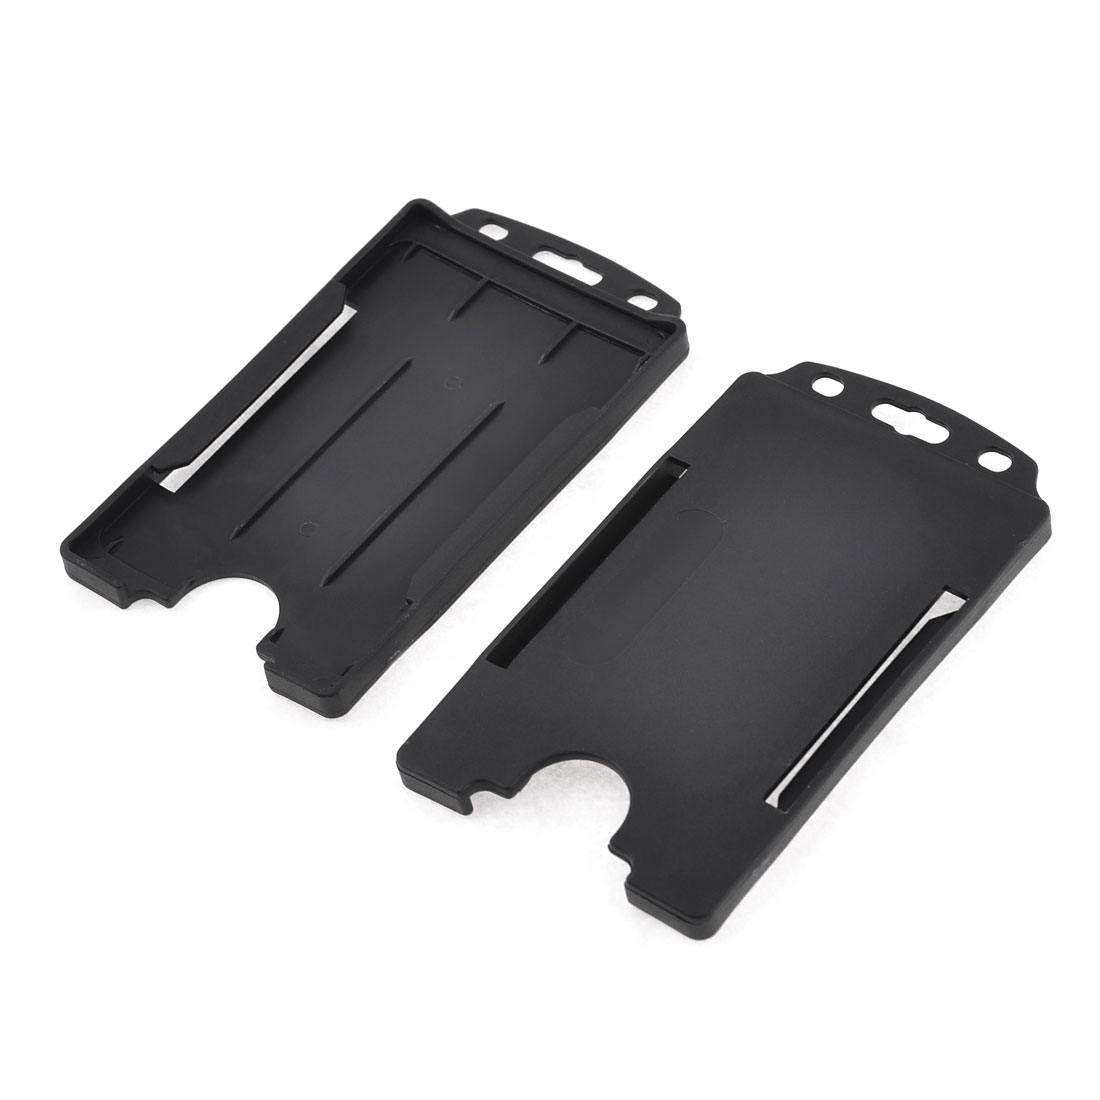 2 Pcs Black Plastic Vertic School Student Office Staff Work Card Holder